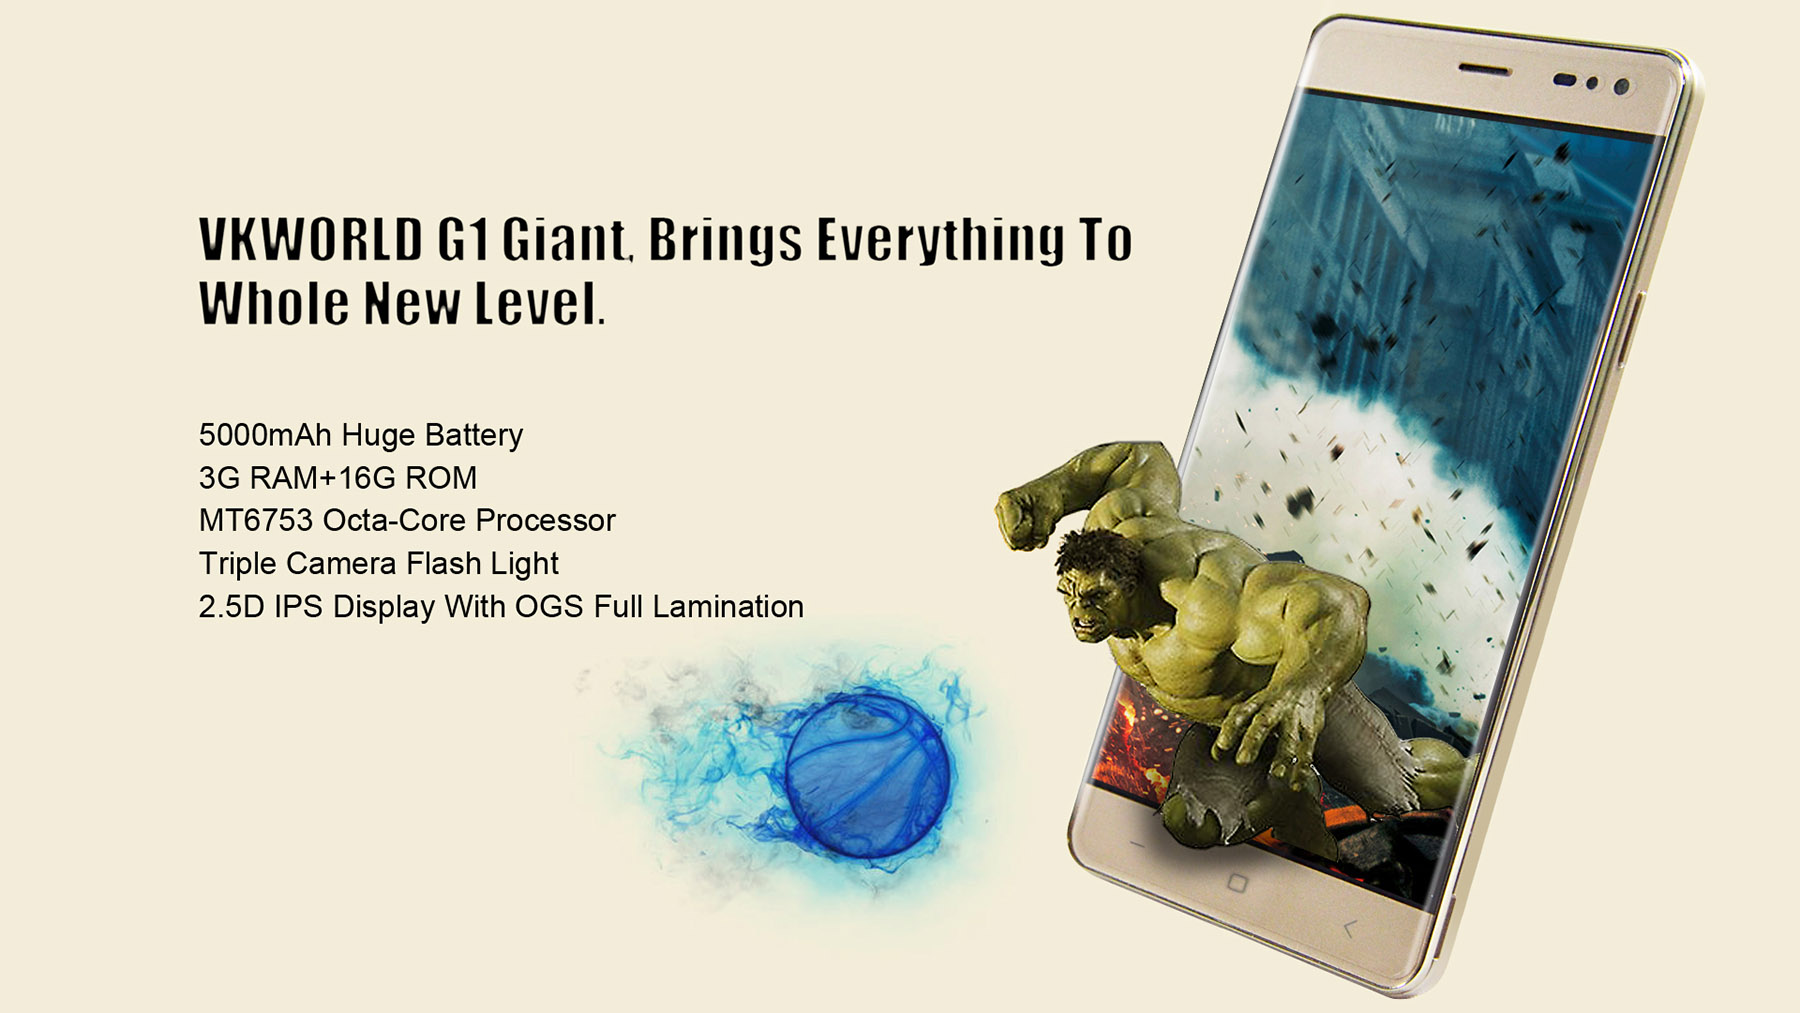 VKworld G1 Android 5.1 4G Phablet 5.5 inch 2.5D Arc HD Screen MTK6753 64bit 1.3GHz Octa Core 3GB RAM 16GB ROM 13.0MP + 8.0MP Cameras 5000mAh Battery